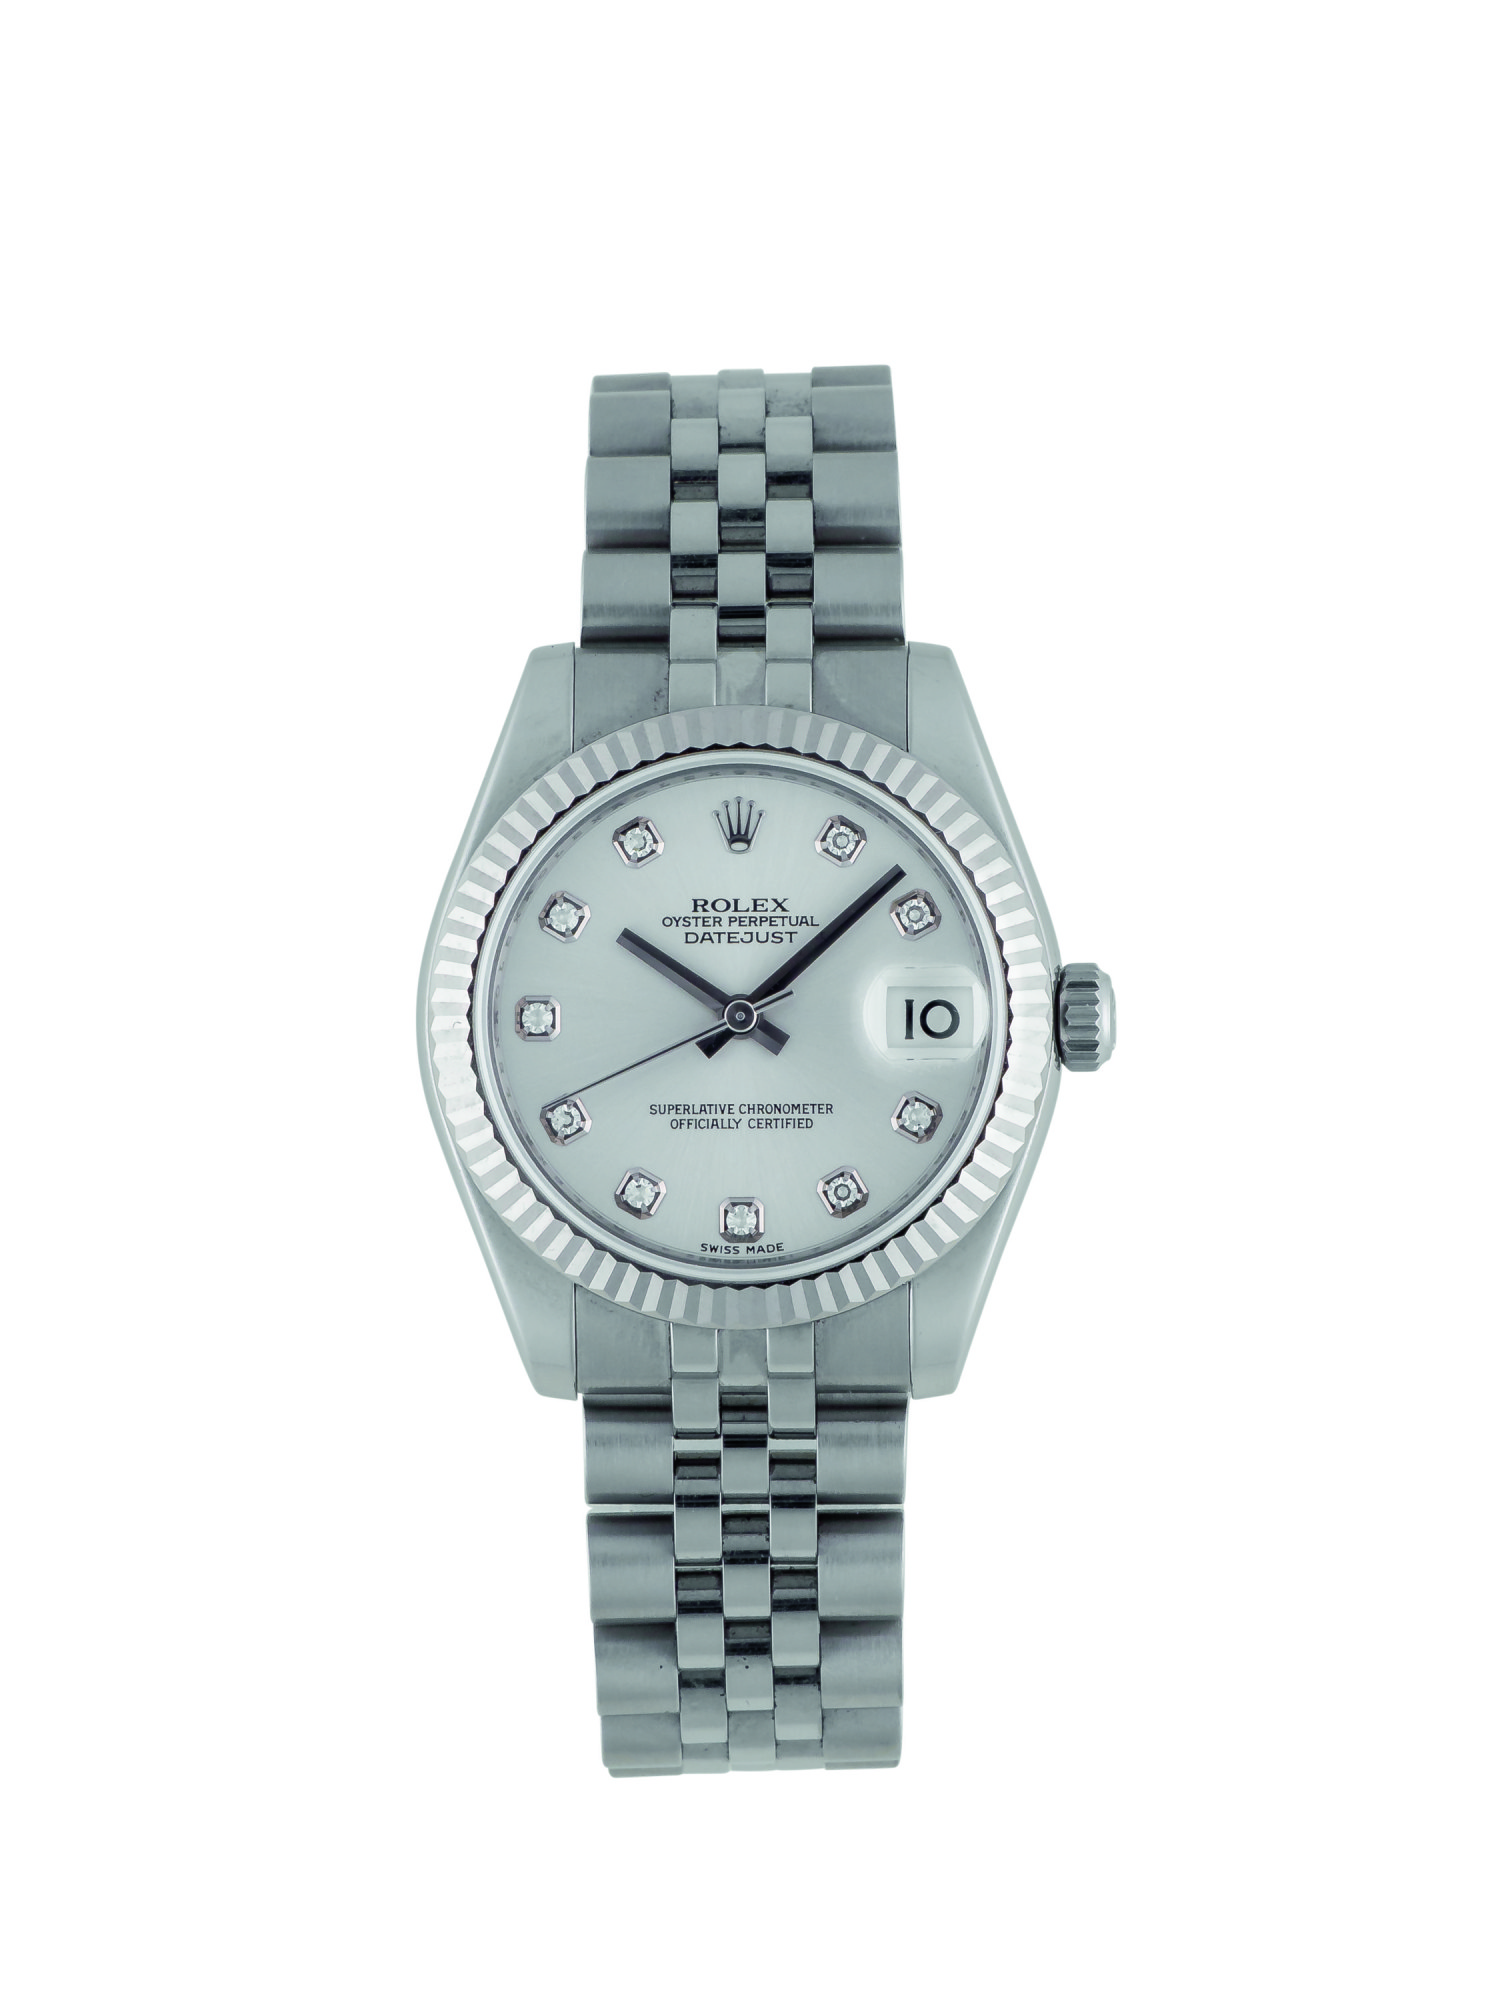 ROLEX | DATEJUST, REF 178274 STAINLESS STEEL WHITE GOLD AND DIAMOND-SET WRISTWATCH WITH DATE AND BRACELET CIRCA 2006